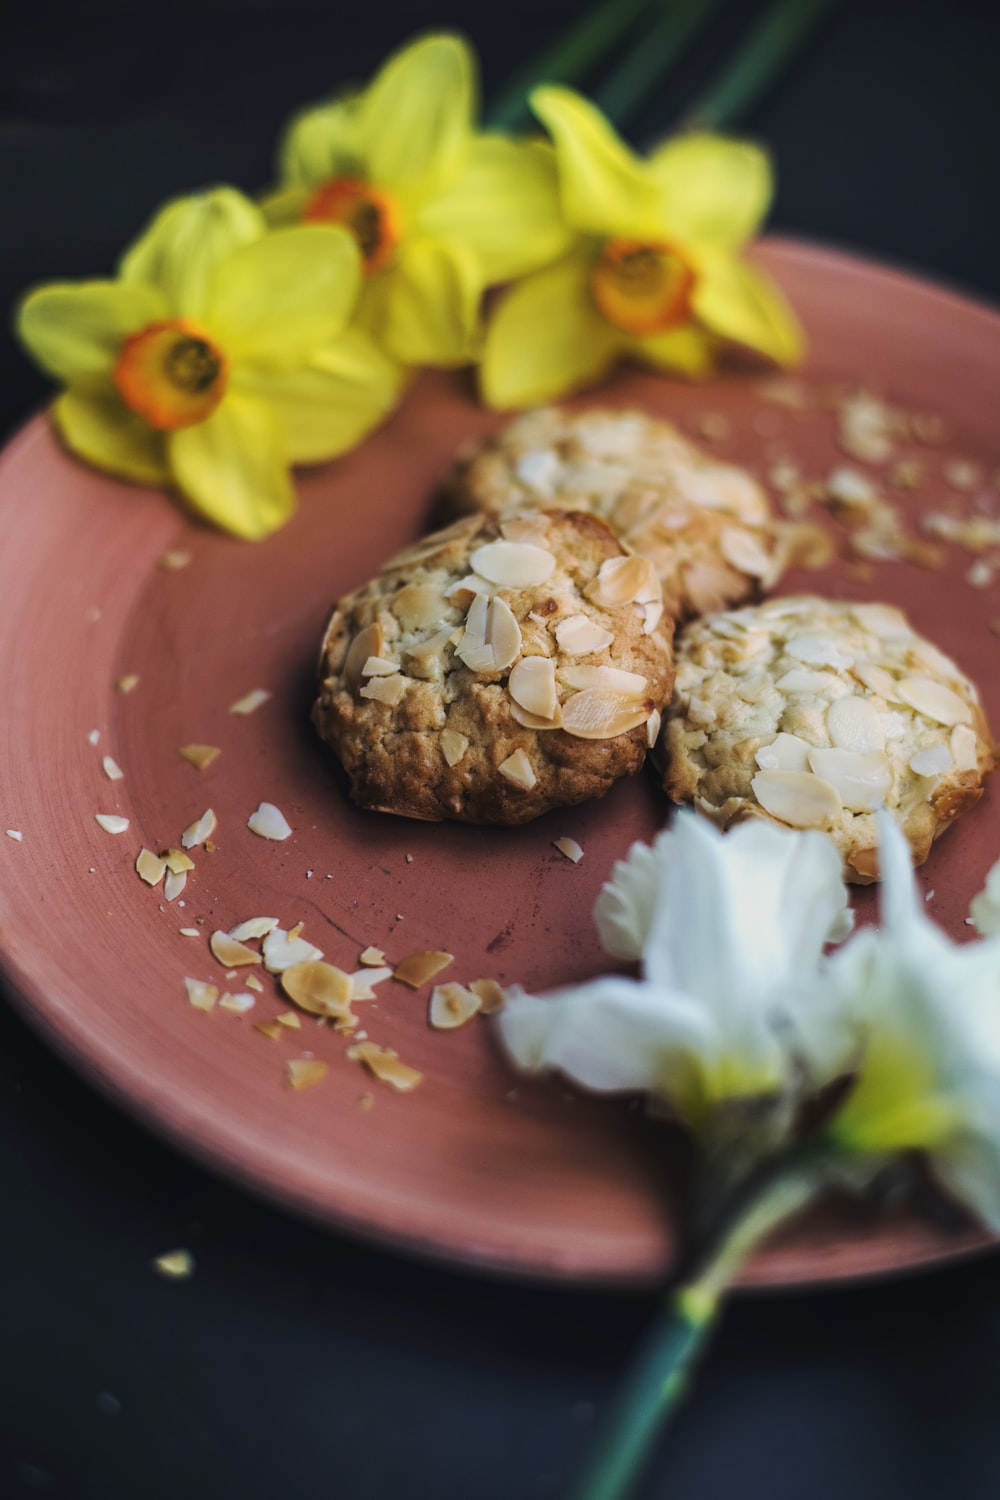 oatmeal cookies and daffodil flowers on plate